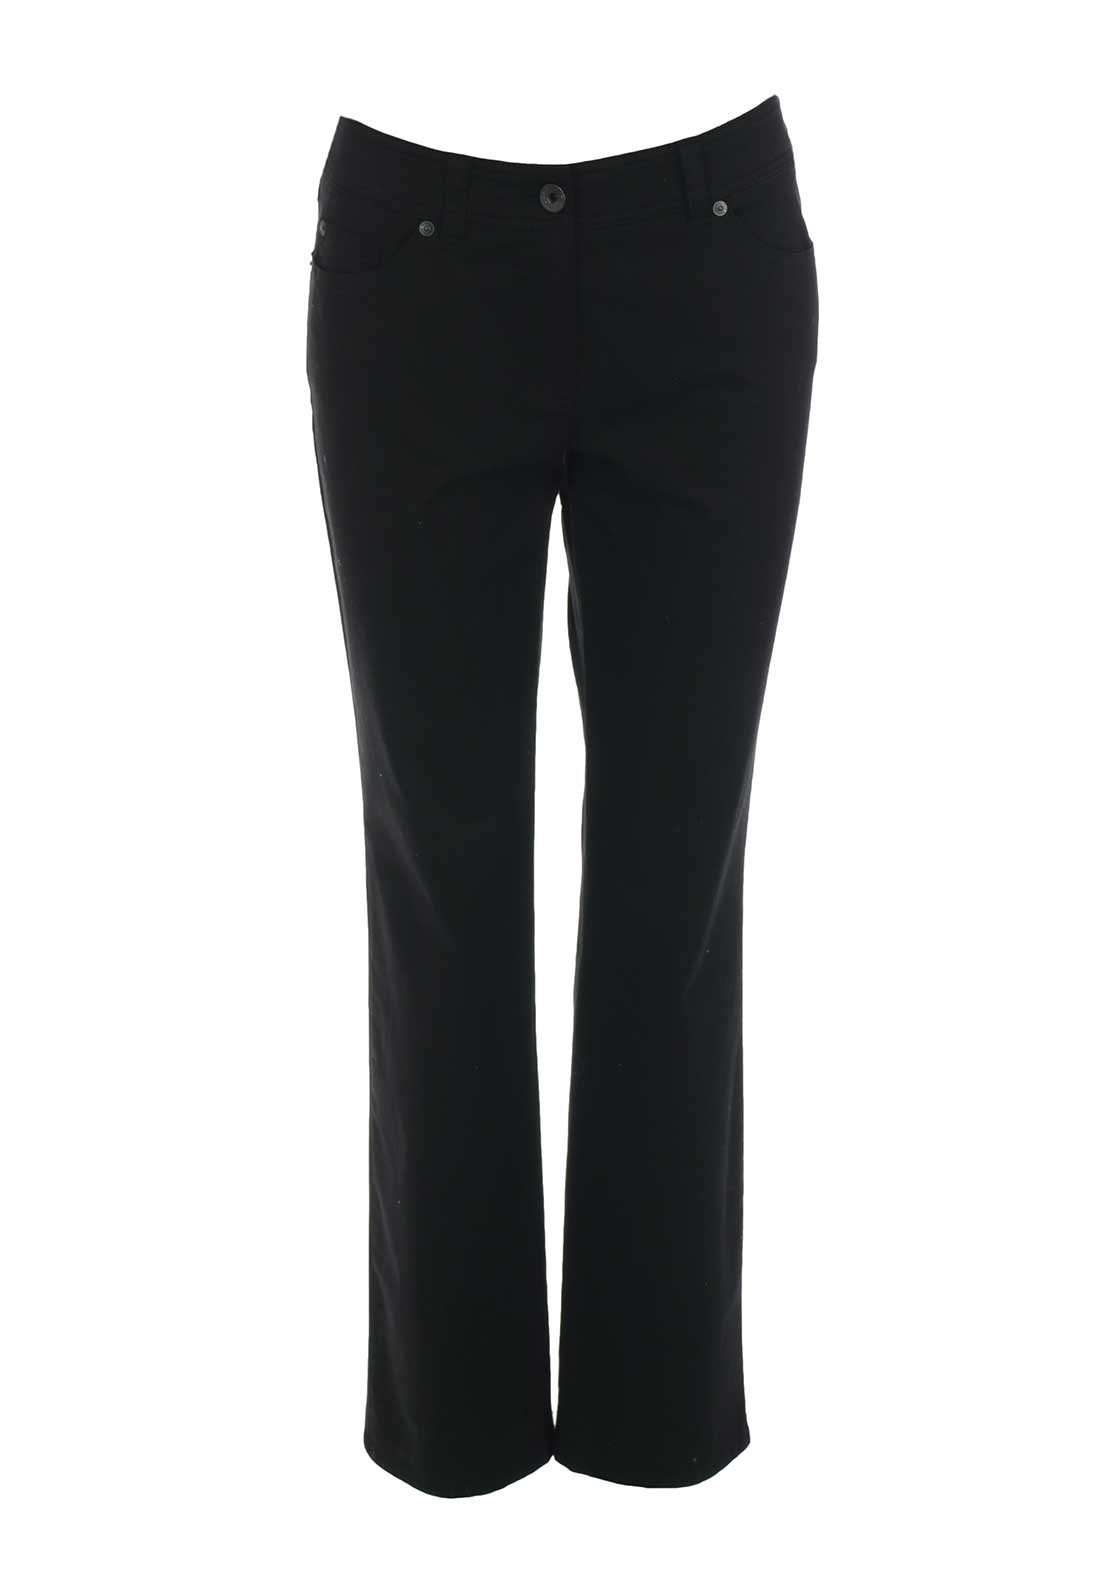 Gerry Weber Danny Short Leg Jeans, Black